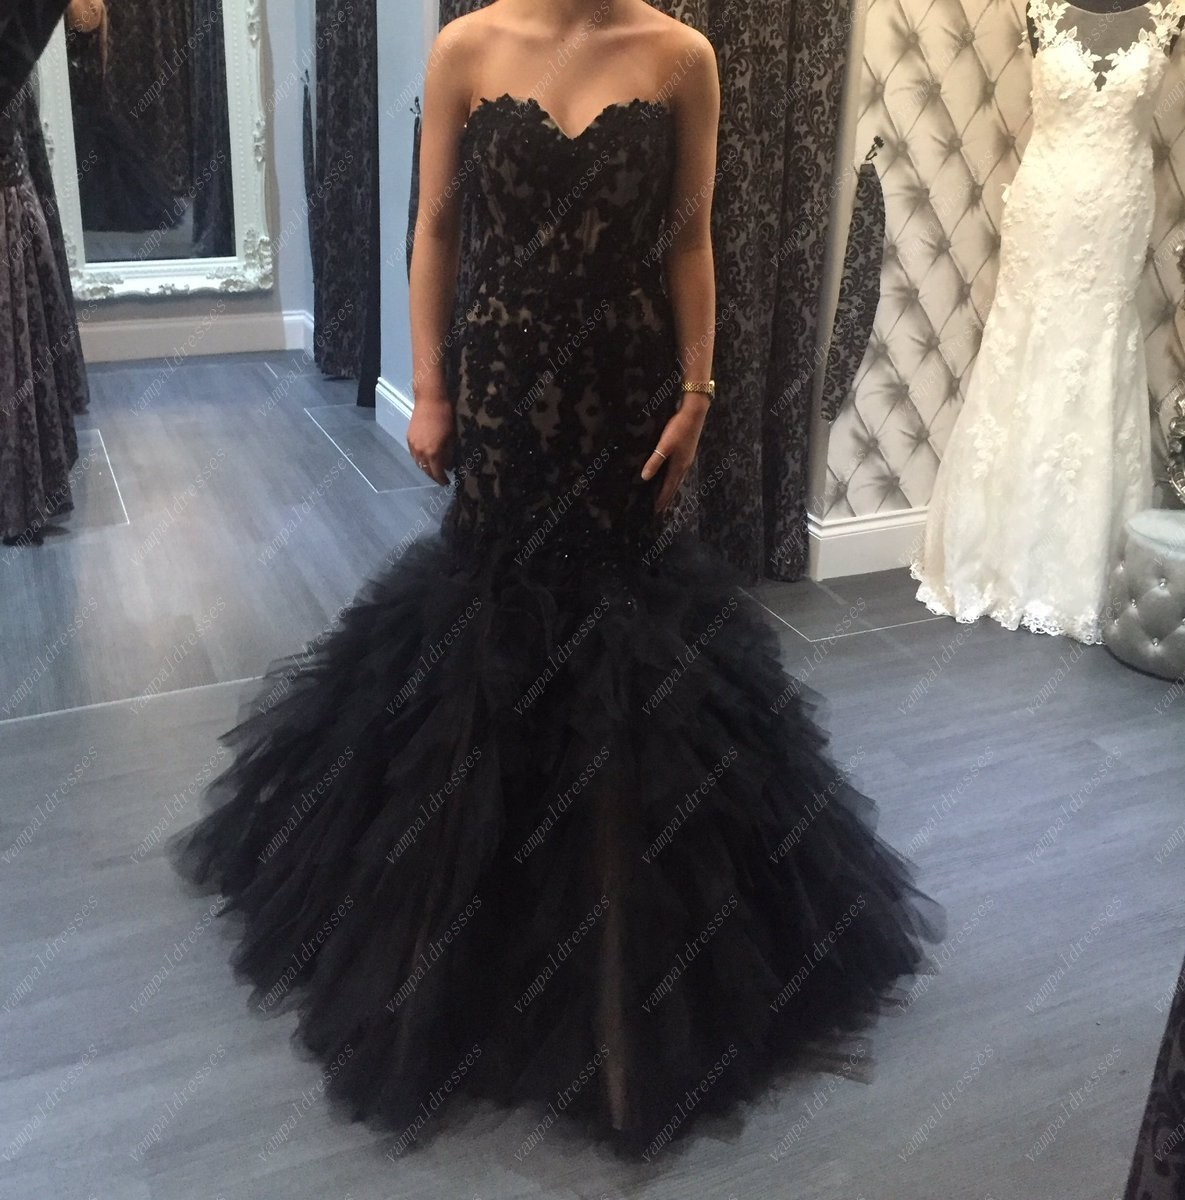 Primary image for Black Strapless Lace Bodice Tulle Mermaid Dropped Waist Formal Dress